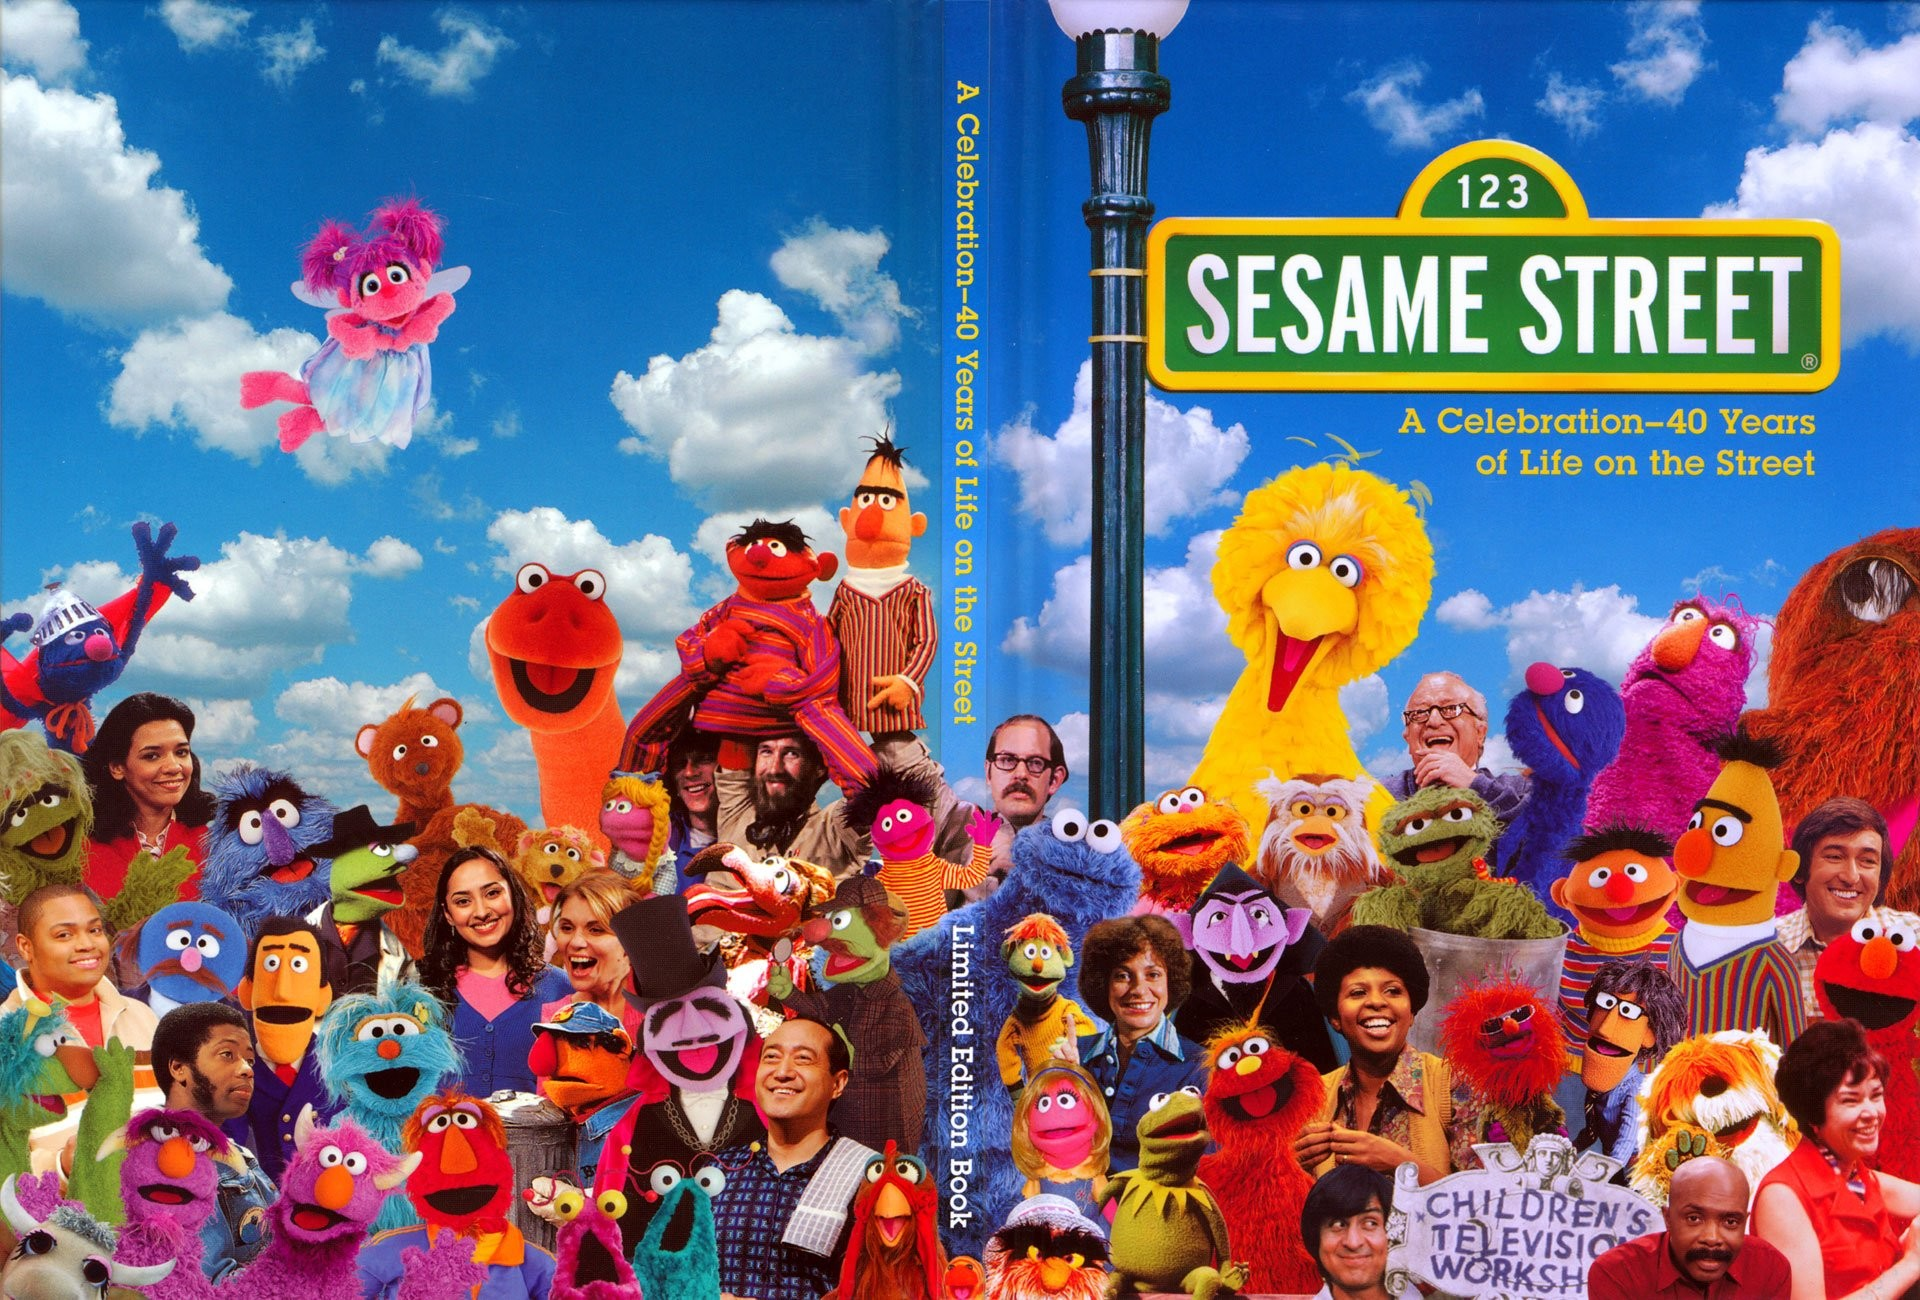 Sesame Street is an educational television program designed for preschoolers and is recognized as a pioneer of the contemporary standard which combines education and